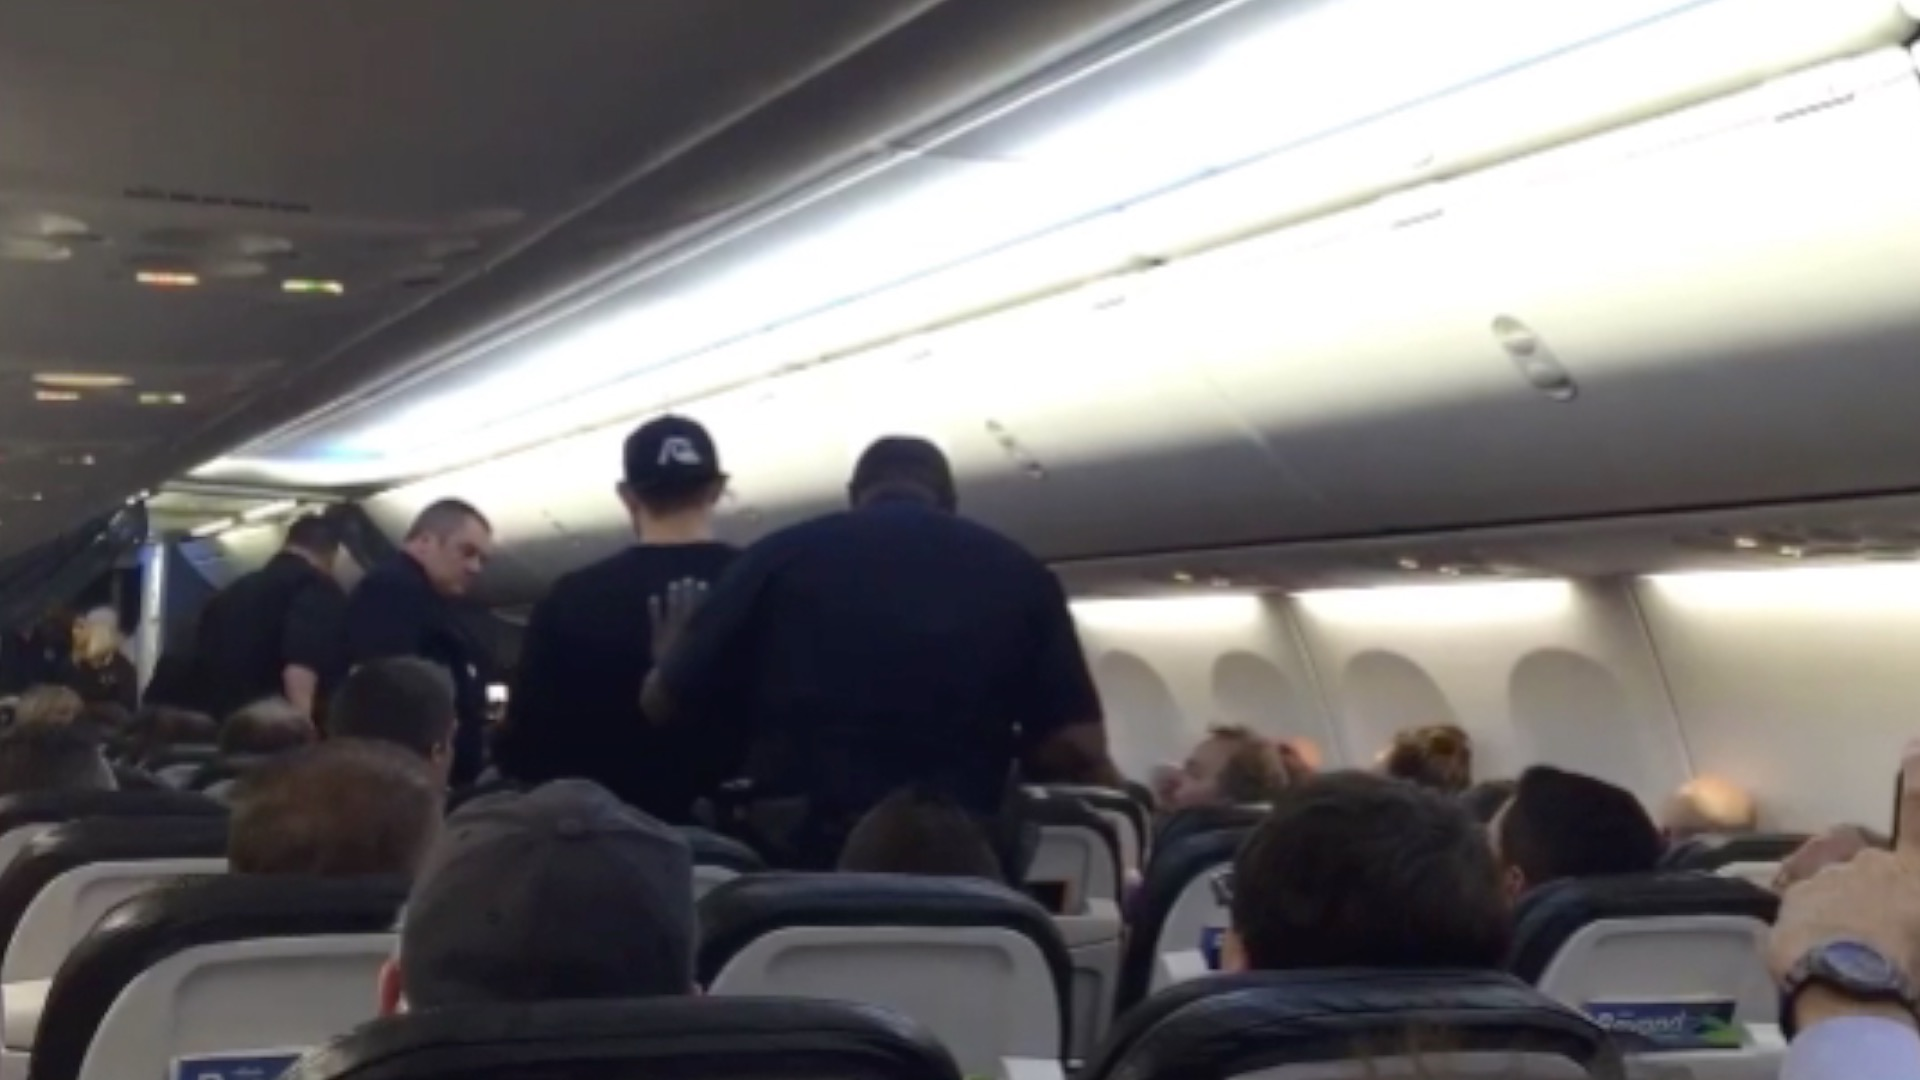 'I'm not a terrorist but we're going to die': Flight diverted due to unruly passenger